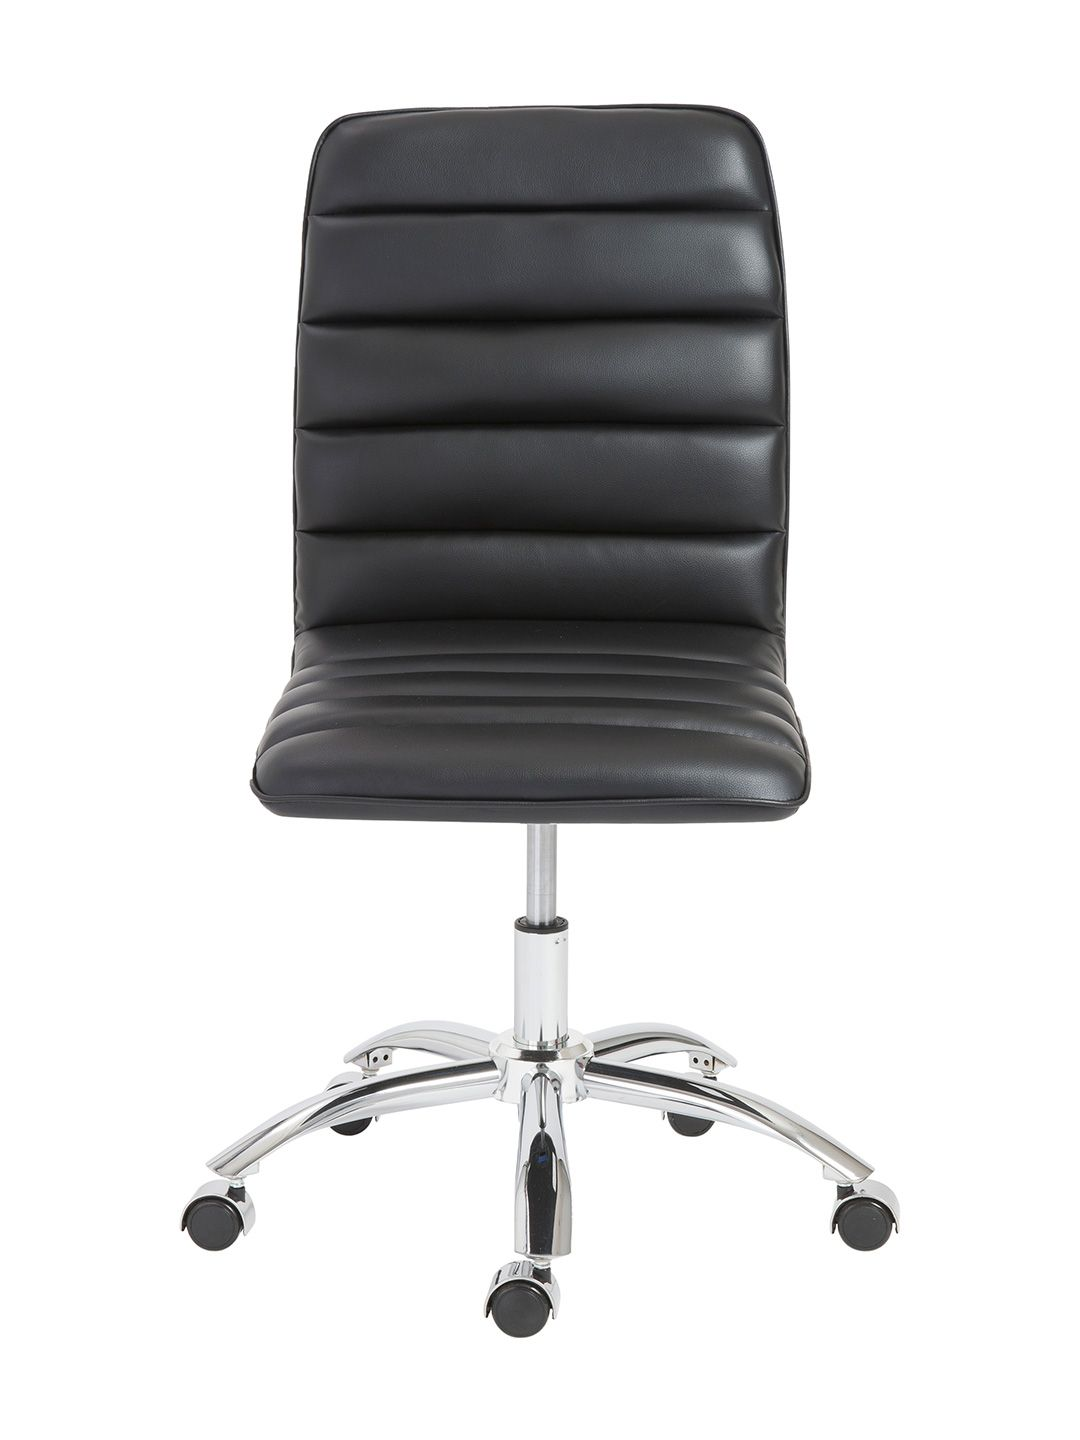 Super Jaleh Office Chair Without Arms By Euro Style At Gilt Complete Home Design Collection Epsylindsey Bellcom